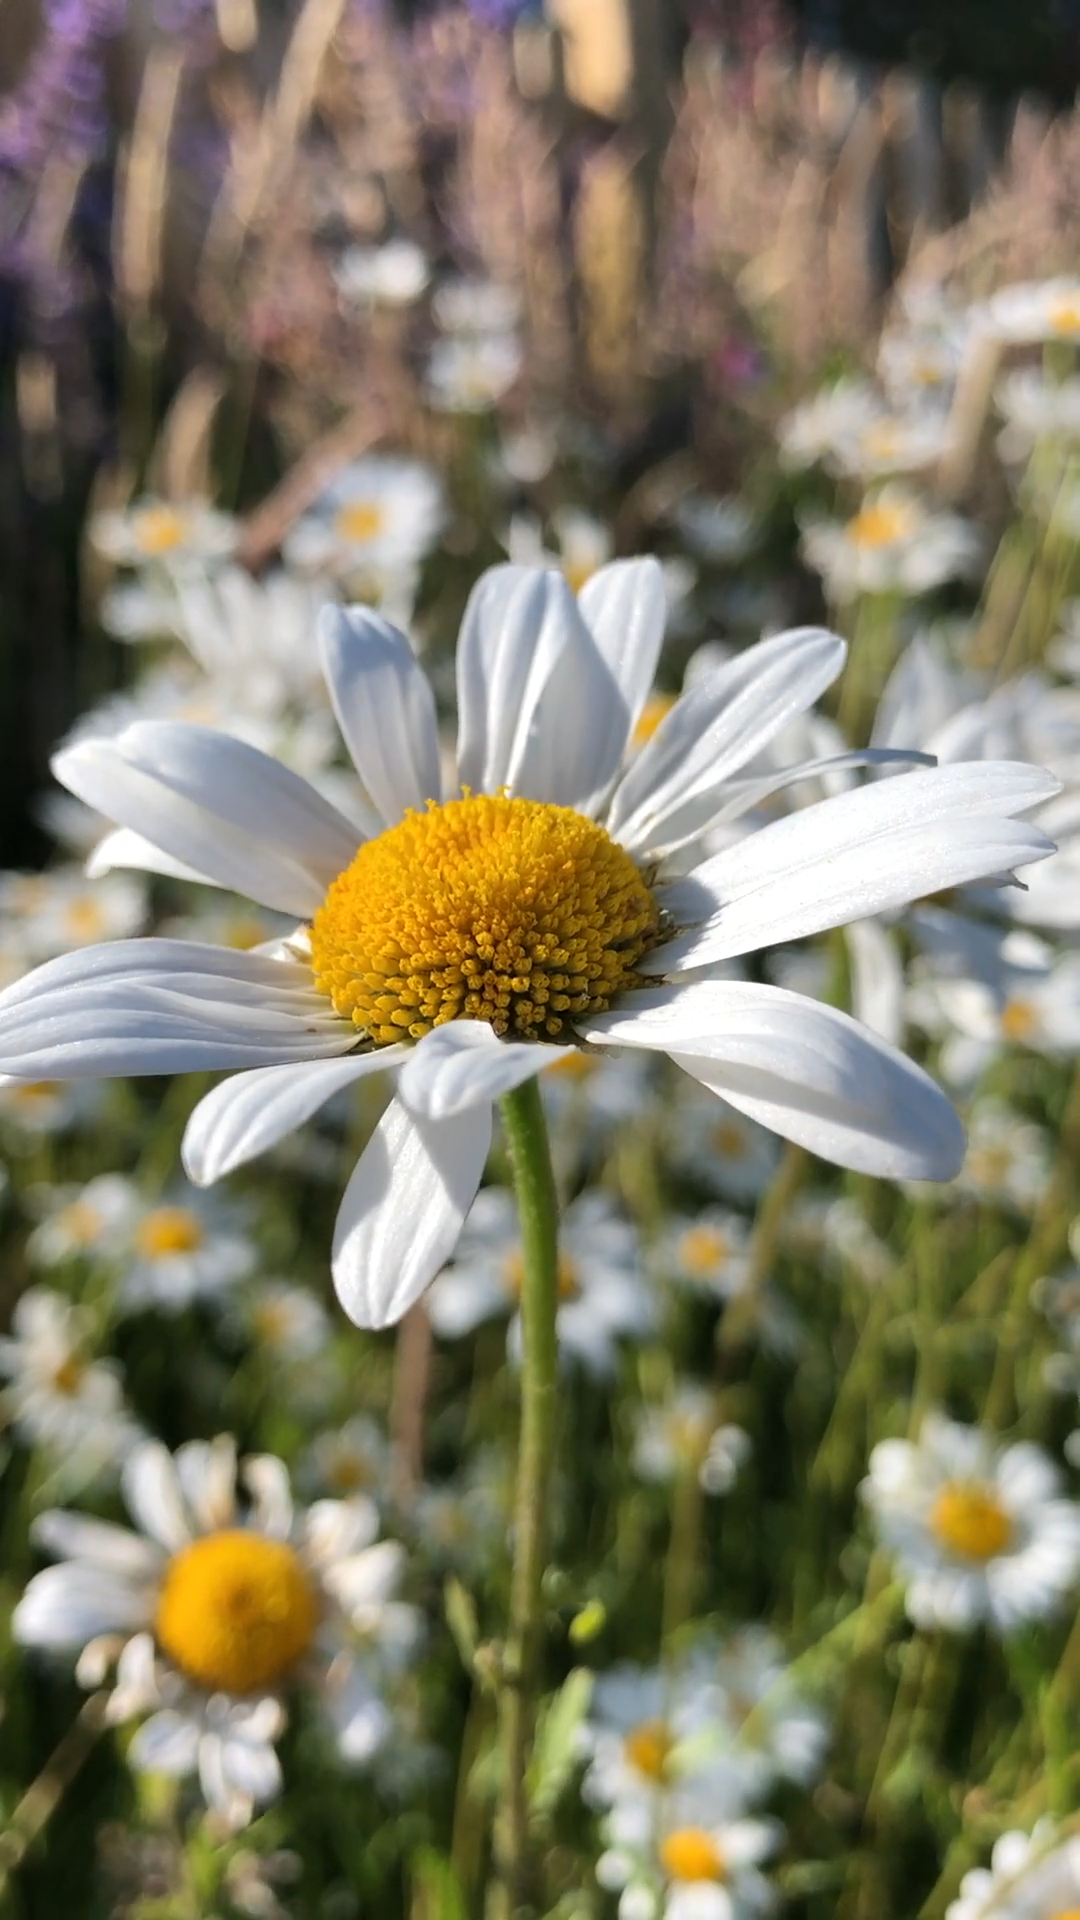 Close-up View of a White Daisy